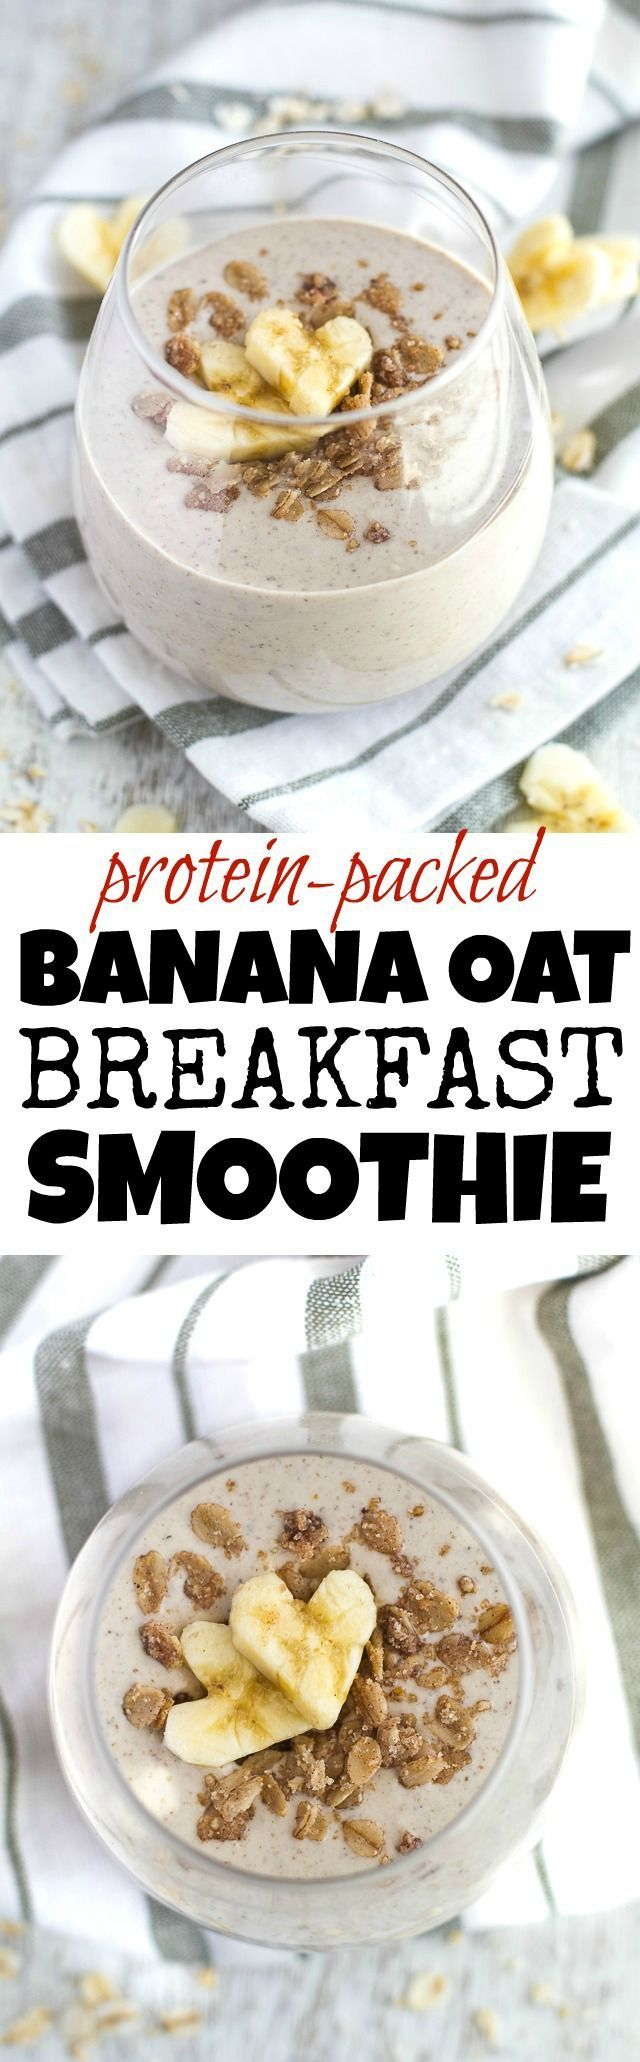 Banana Oat Breakfast Smoothie - 20g of whole food protein in a deliciously creamy smoothie that's guaranteed to keep you satisfied all morning! | runningwithspoons... #recipe #healthy